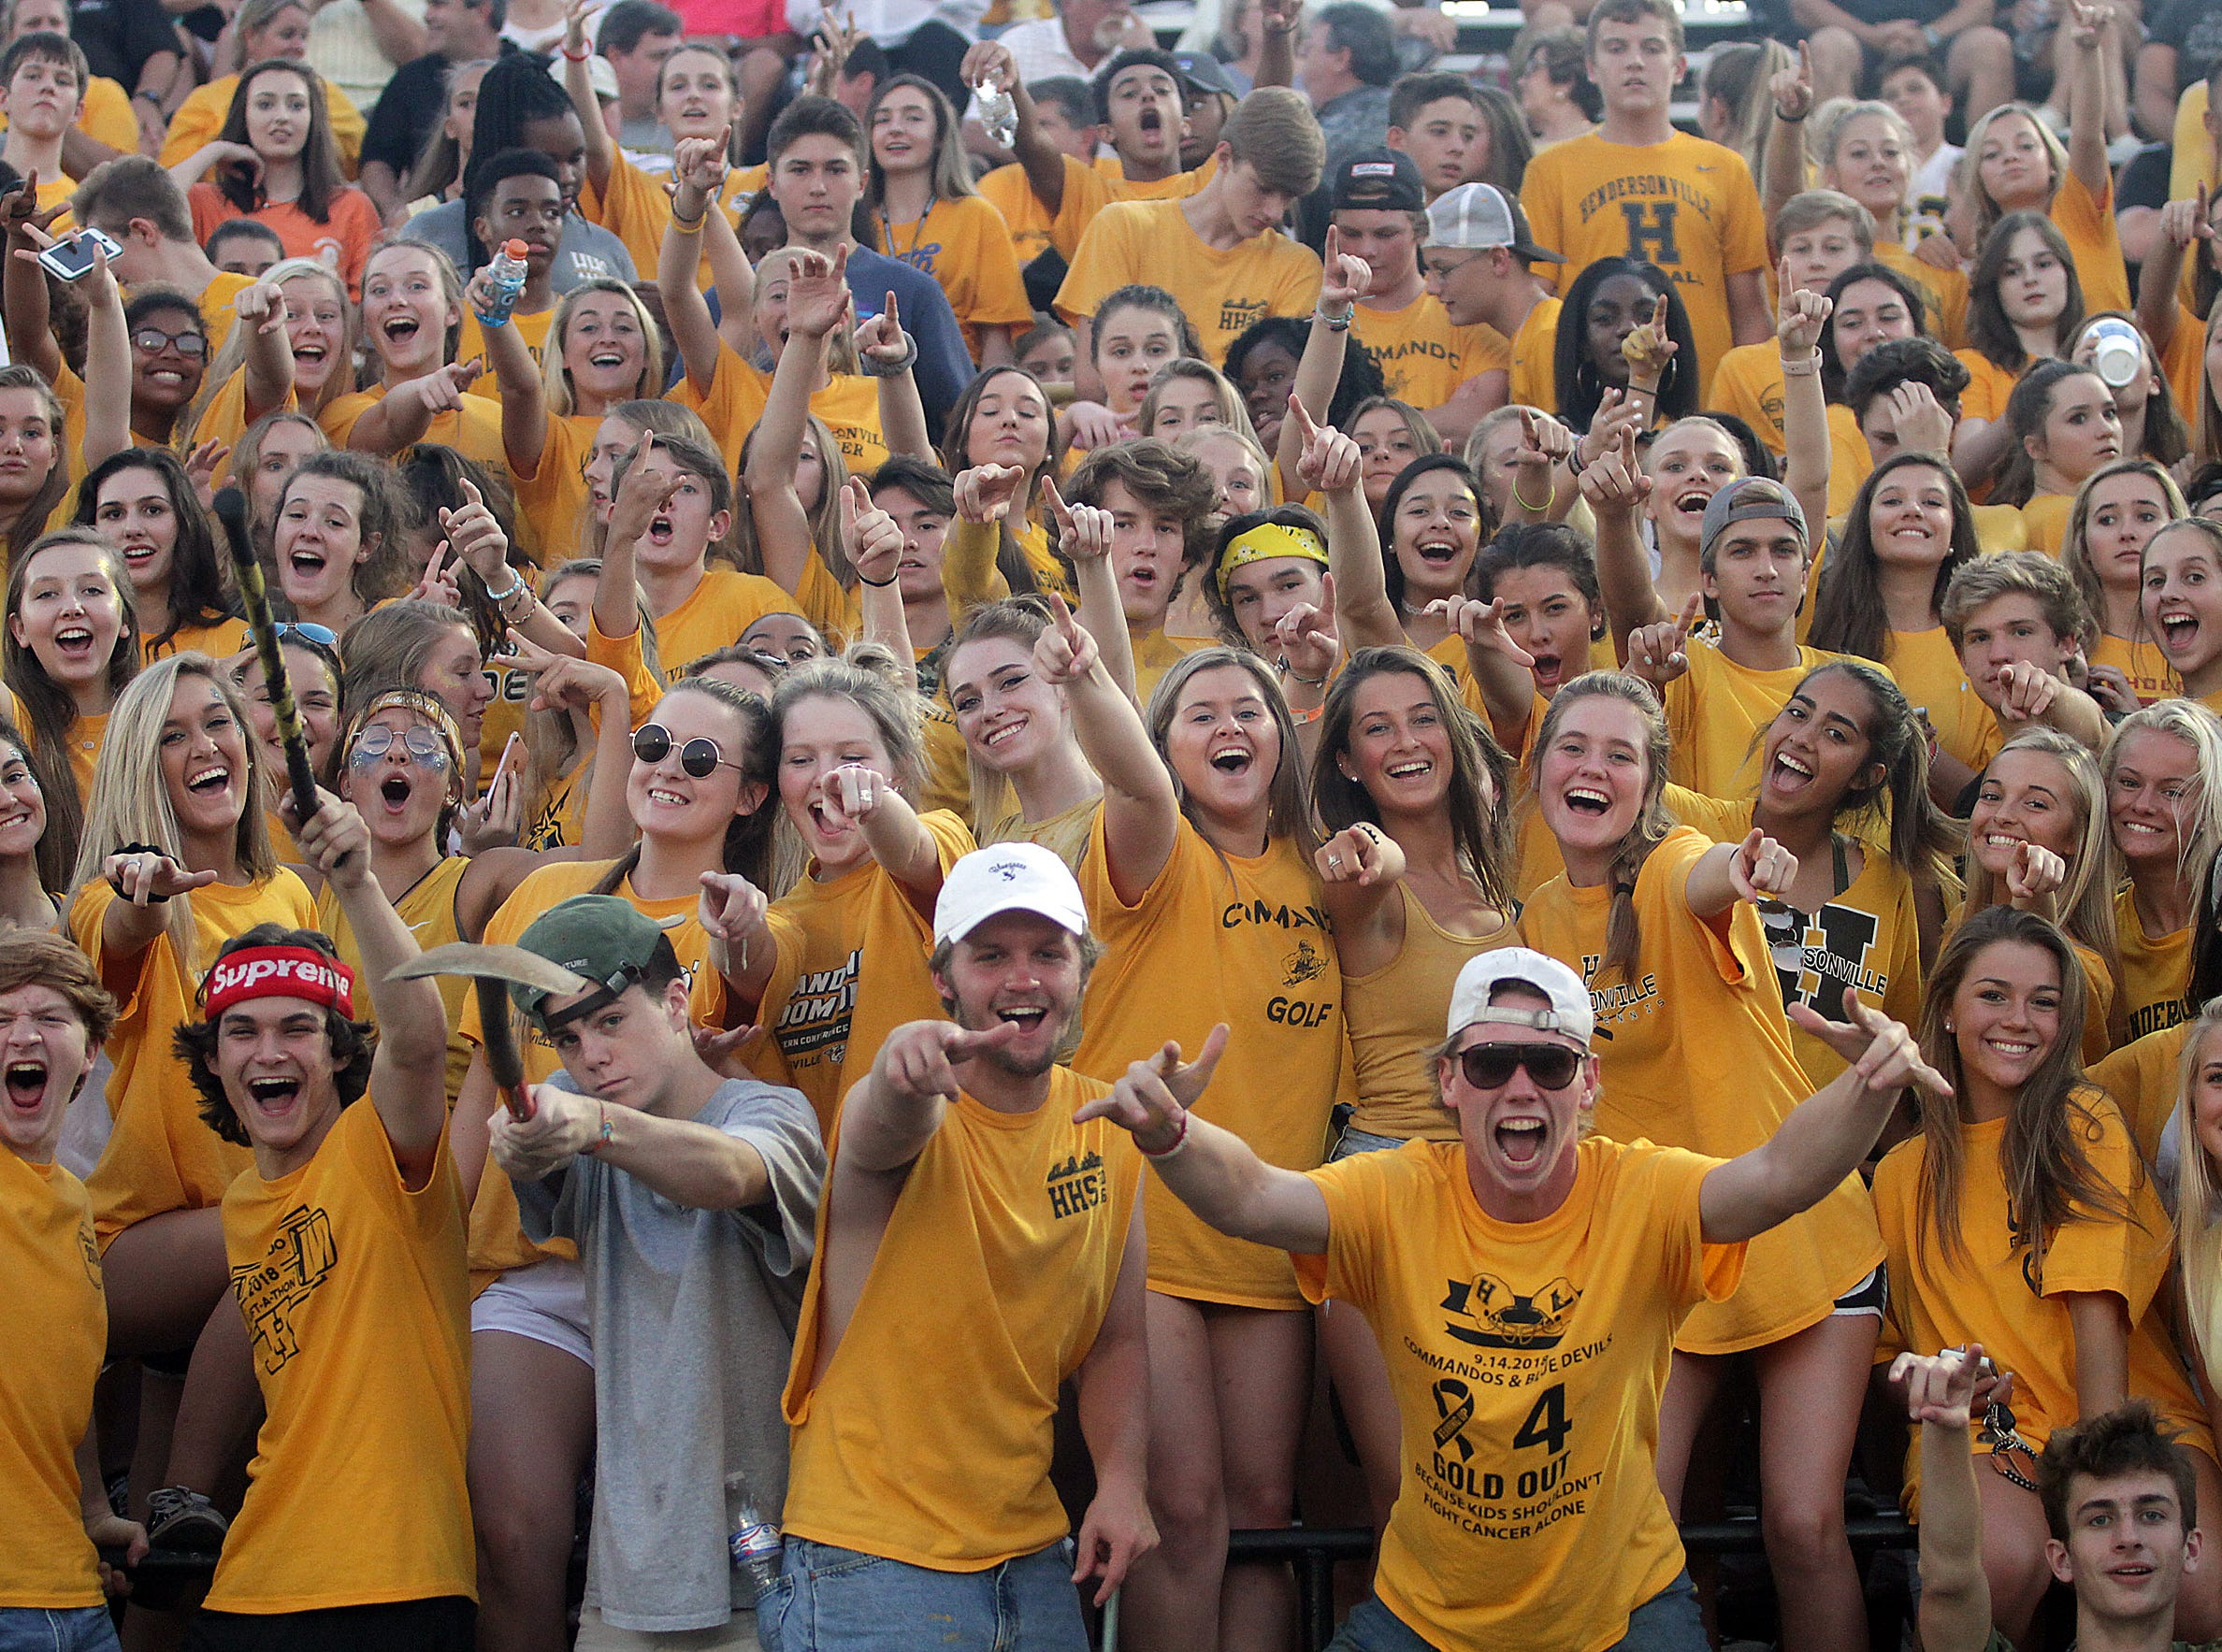 Hendersonville High students cheer on their team as they take on Lebanon on Friday, September 14, 2018.